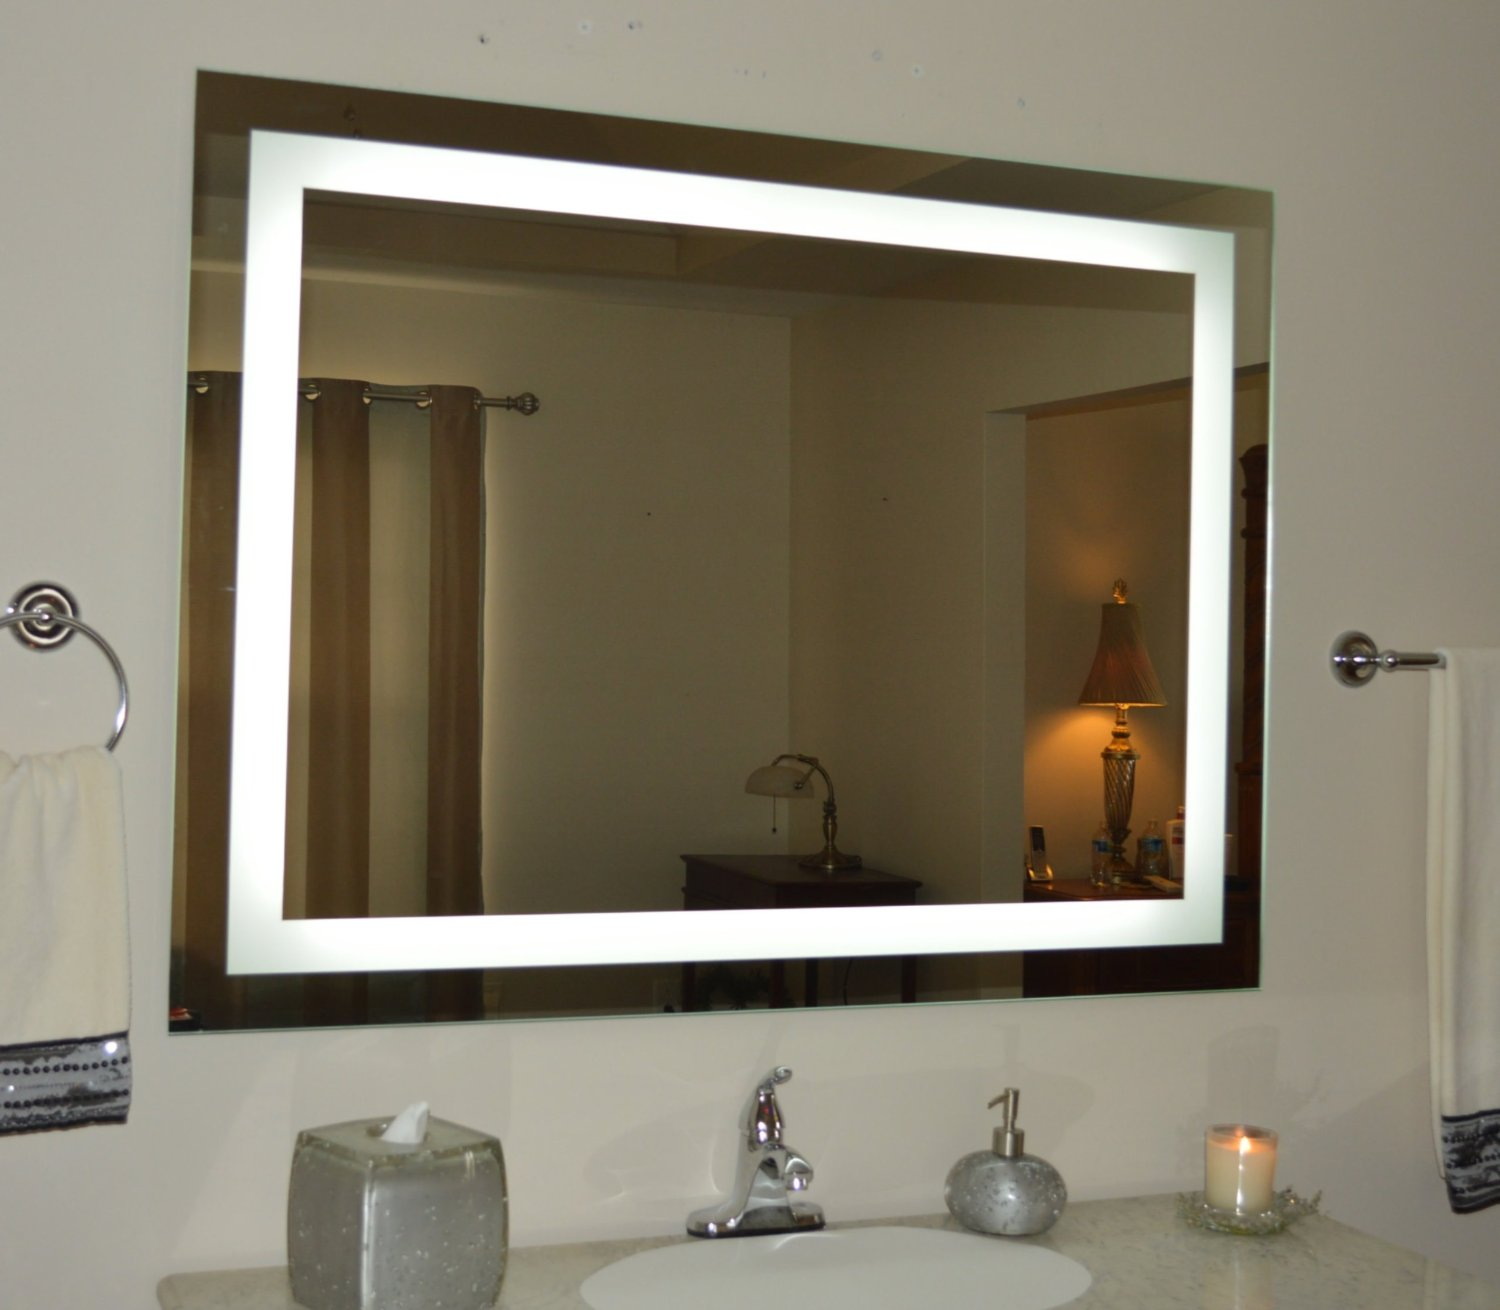 Lighted bathroom vanity mirrors - Lighted Bathroom Vanity Mirrors